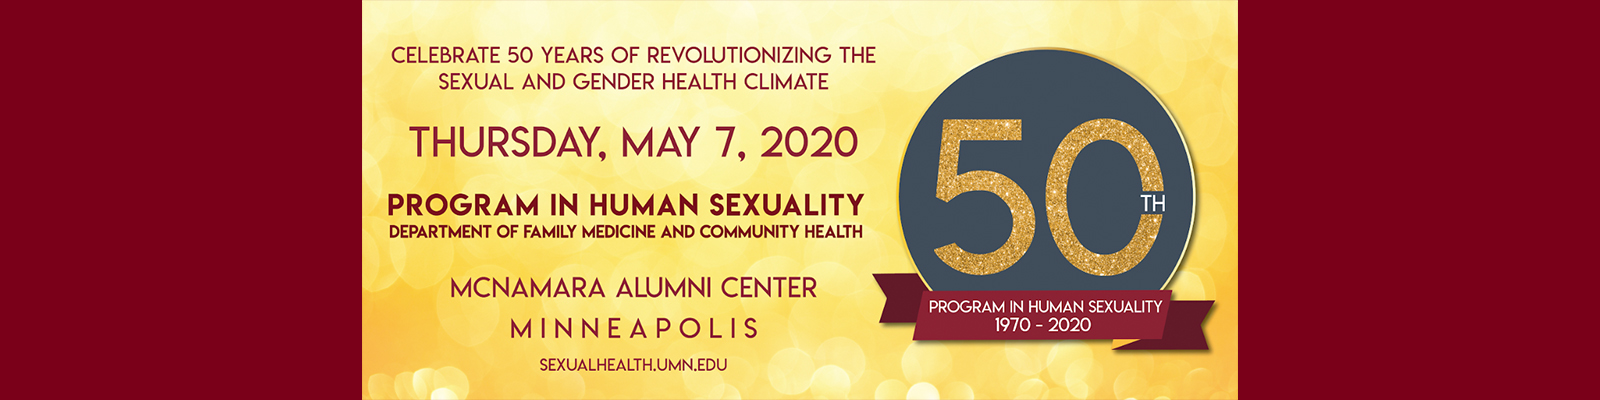 Program in Human Sexuality 50th Anniversary